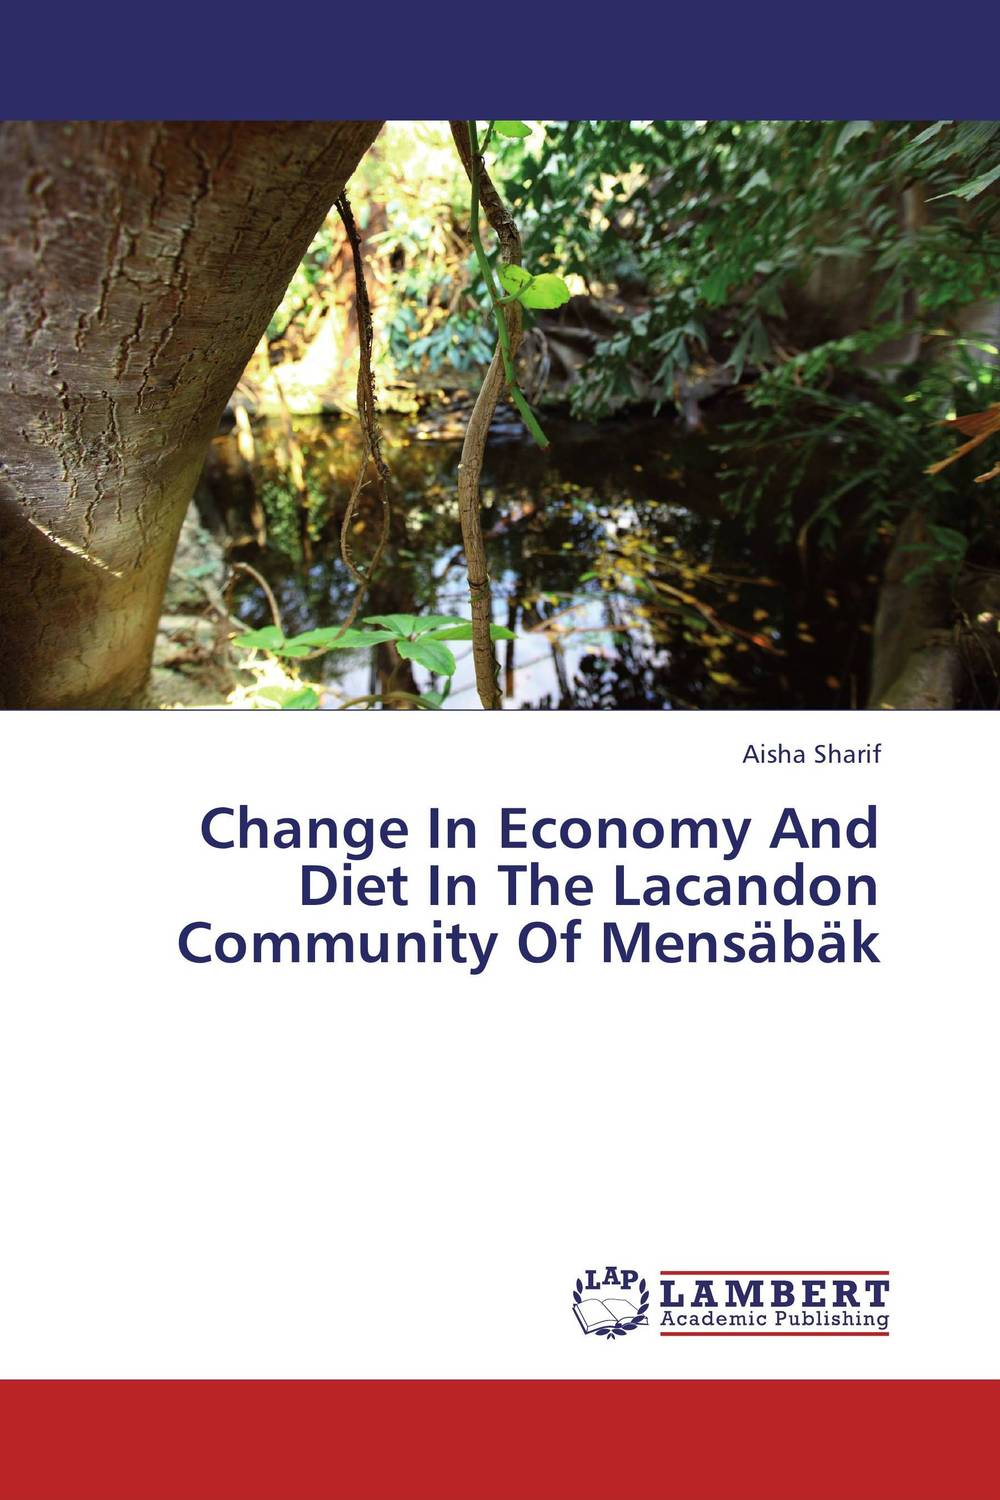 Change In Economy And Diet In The Lacandon Community Of Mensabak walking the road of new economy